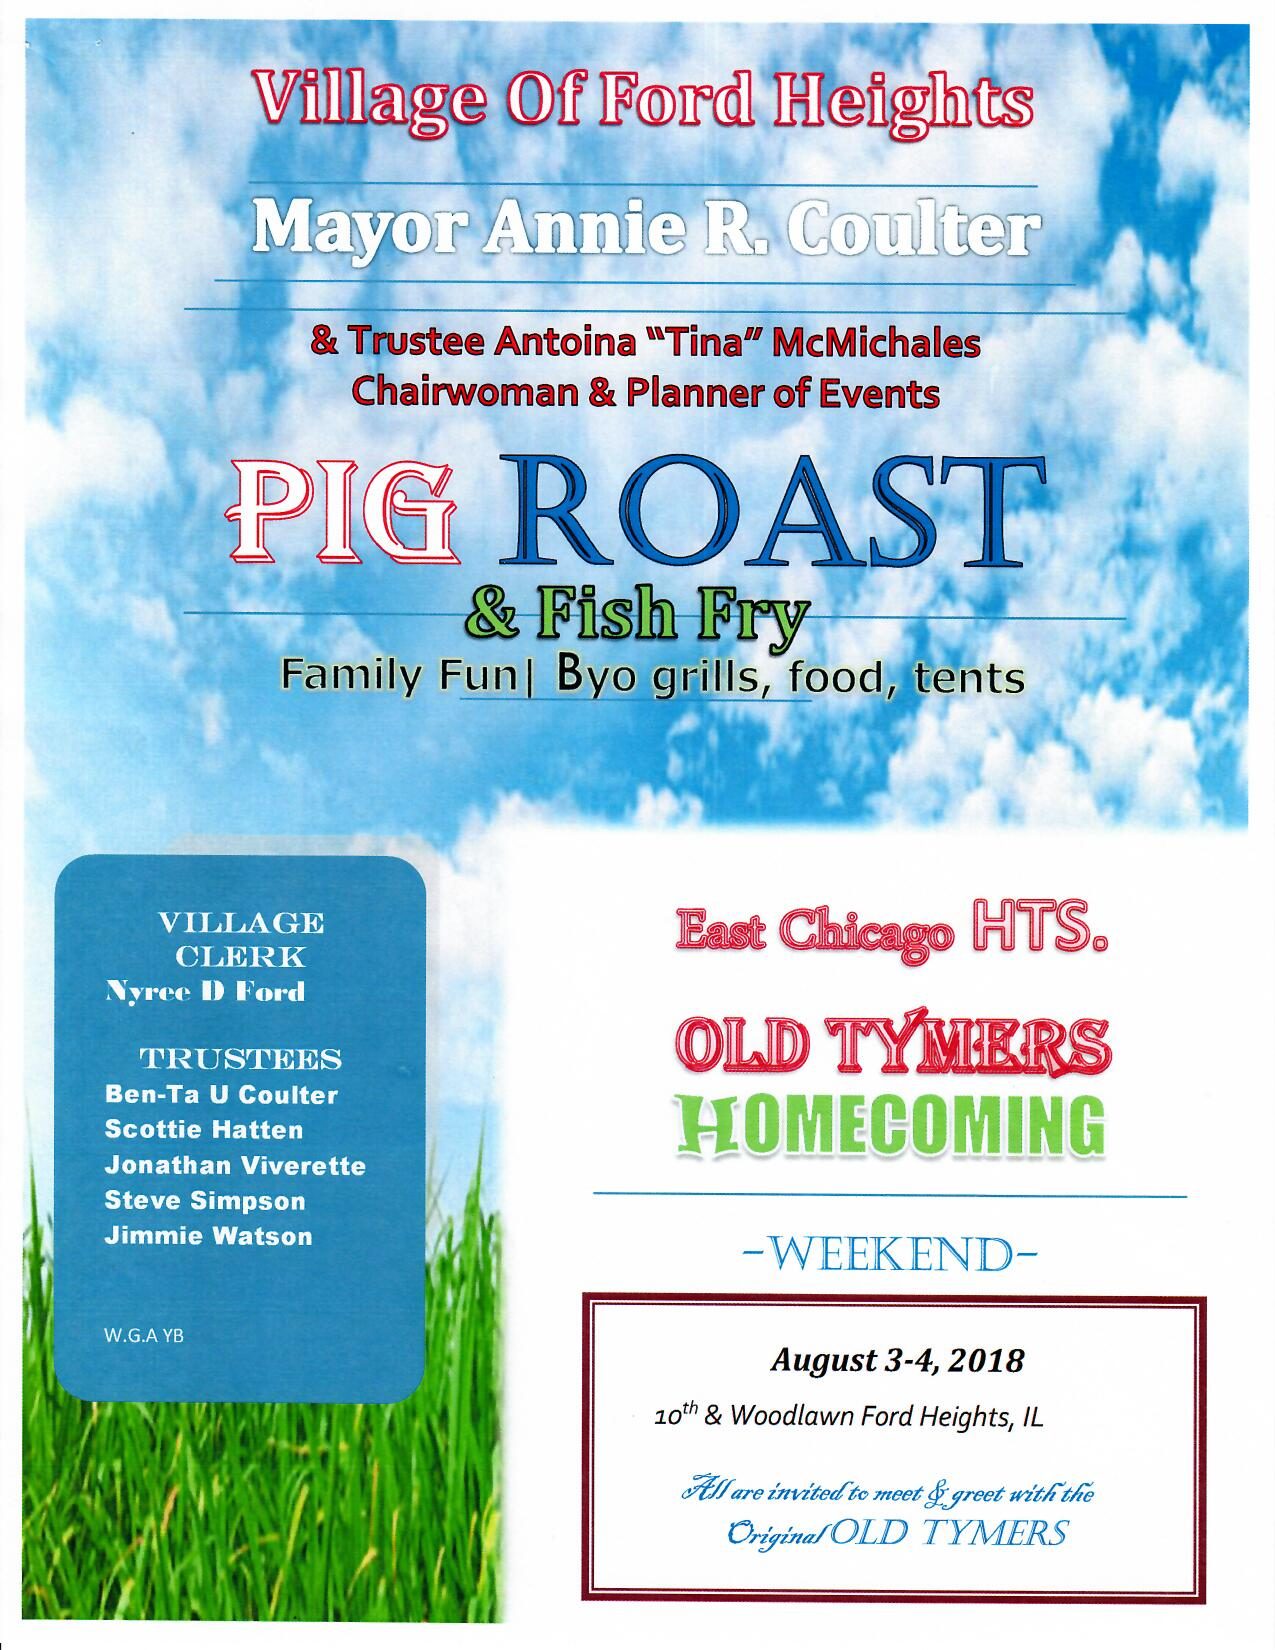 It's time for some Grub Grub Grub, come out and join The Village of Ford Heights and show some Love Love Love. OLD TYMERS Homecoming Pig Roast event will be held for 2 days, come fill your bellies while meeting and greeting with the original OLD TYMERS.